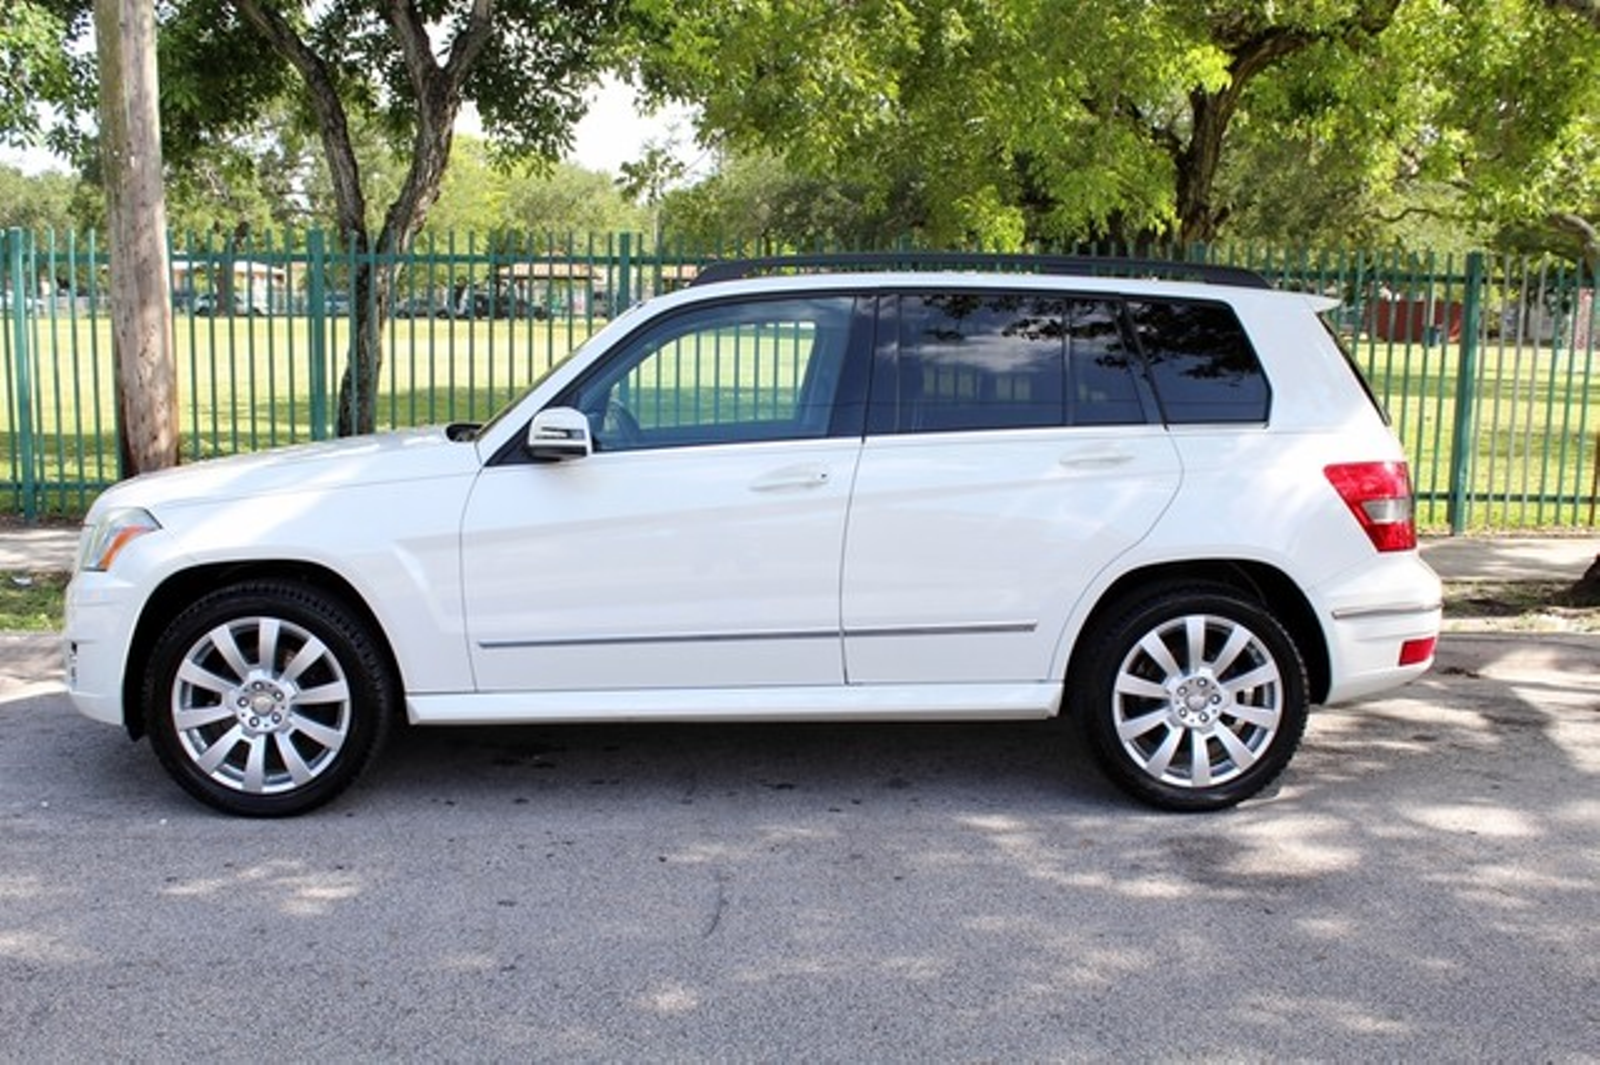 2010 mercedes benz glk350 350 4matic city florida the for Mercedes benz glk350 2010